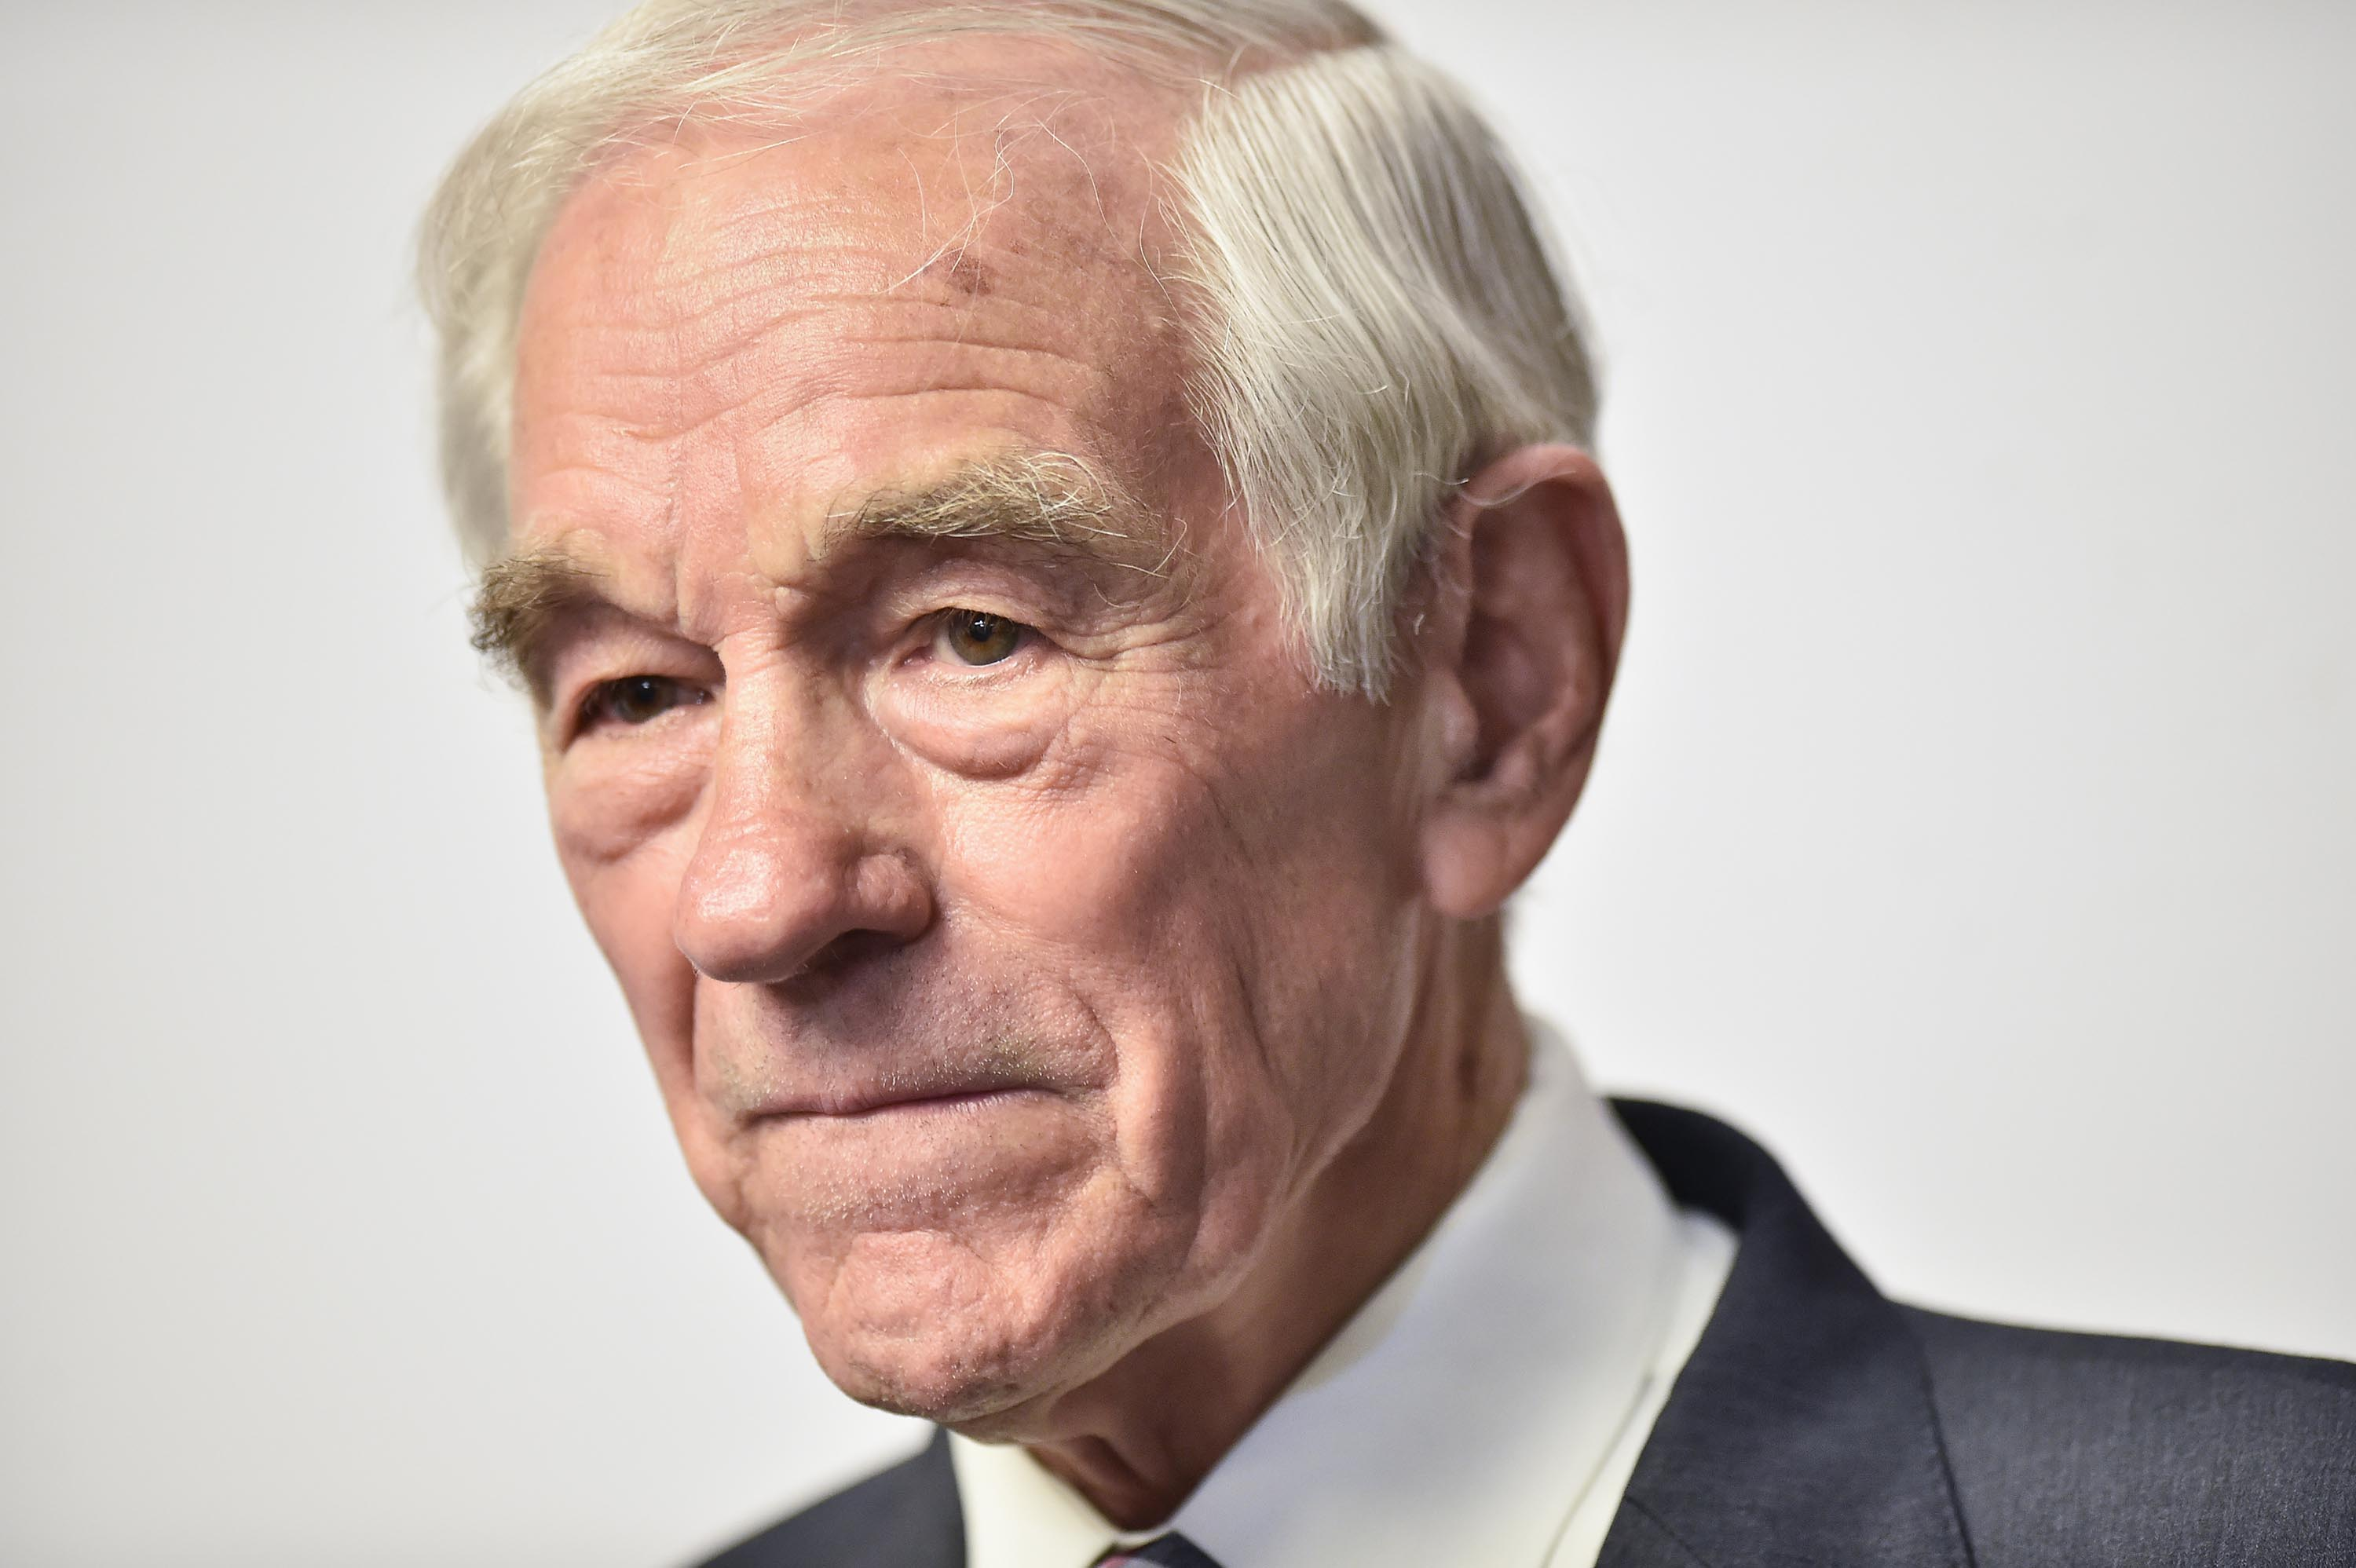 Ron Paul hospitalized after apparent medical episode, says he's 'doing fine'